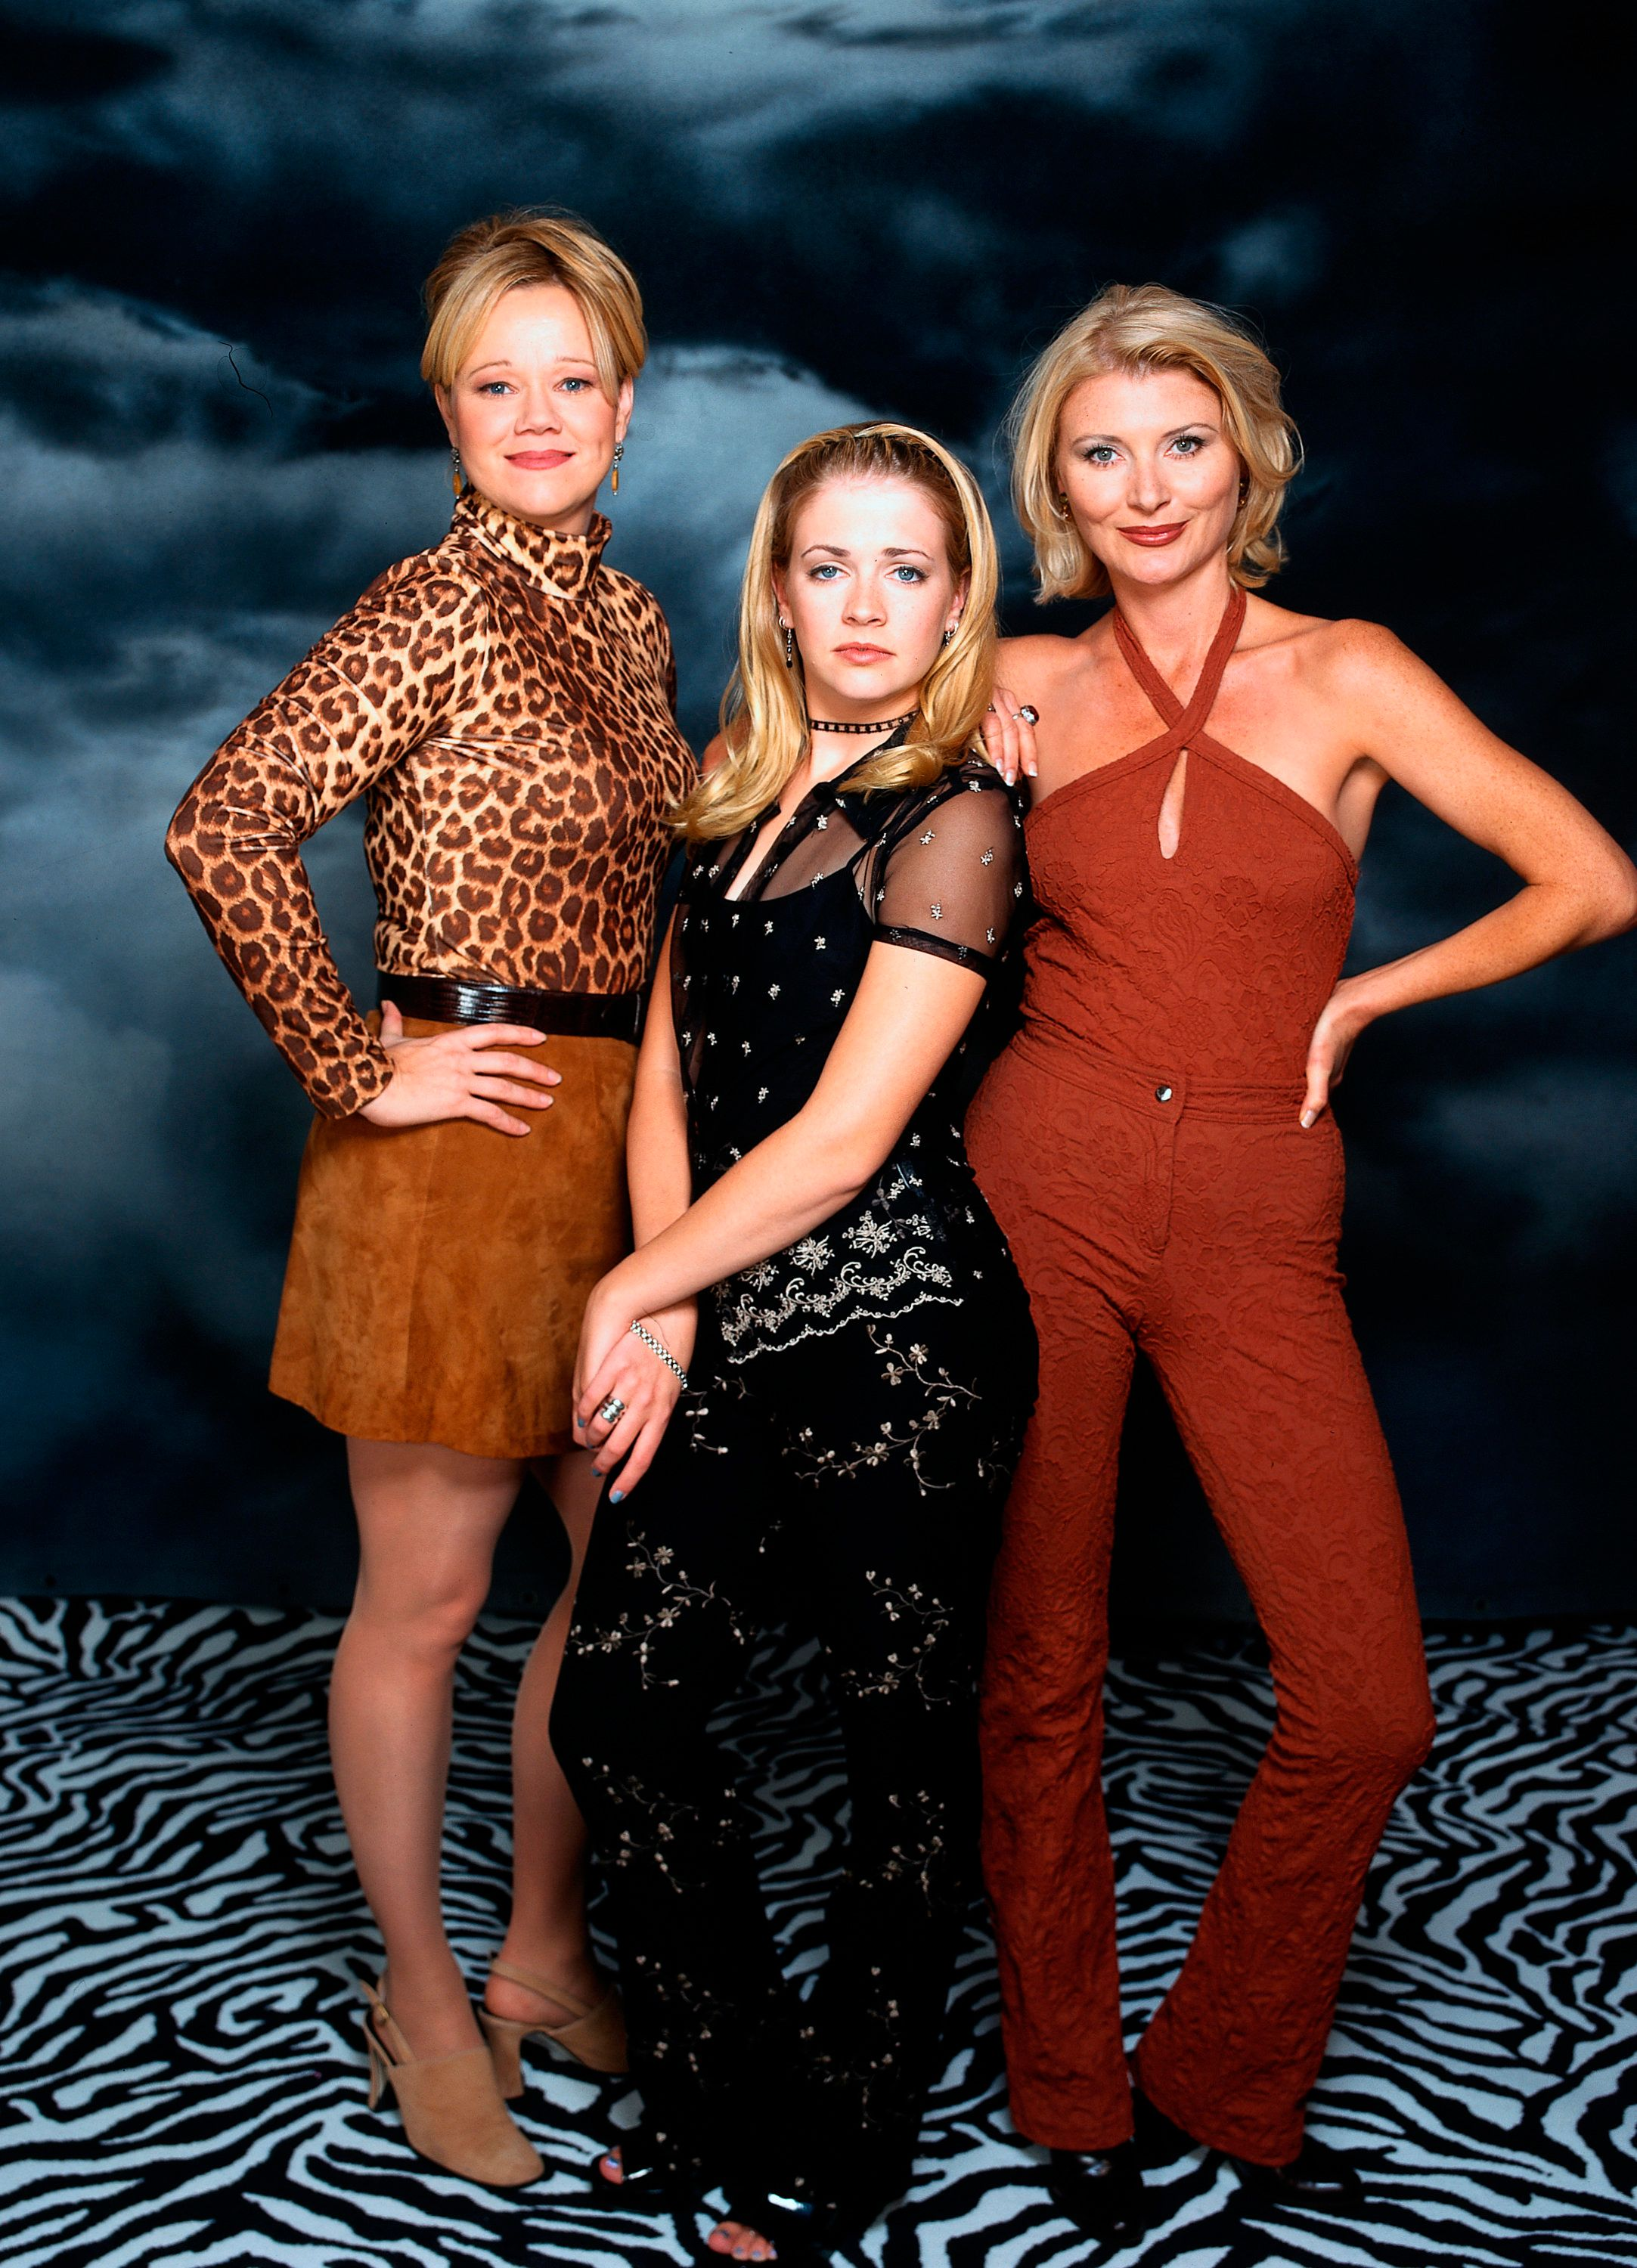 UNITED STATES - DECEMBER 09:  SABRINA, THE TEENAGE WITCH - 'GALLERY' - 8/10/97, Melissa Joan Hart (as Sabrina Spellman), a perfectly normal 16-year-old, is informed by her aunts, Caroline Rhea (as Hilda) and Beth Broderick (as Zelda), that she (and they, and her whole family on her father's side) are witches. She lives with them in Massachusetts while preparing to receive her witch's license. Along the way, she gets into many scrapes while figuring out how certain spells work.,  (Photo by Bob D'Amico/ABC via Getty Images)